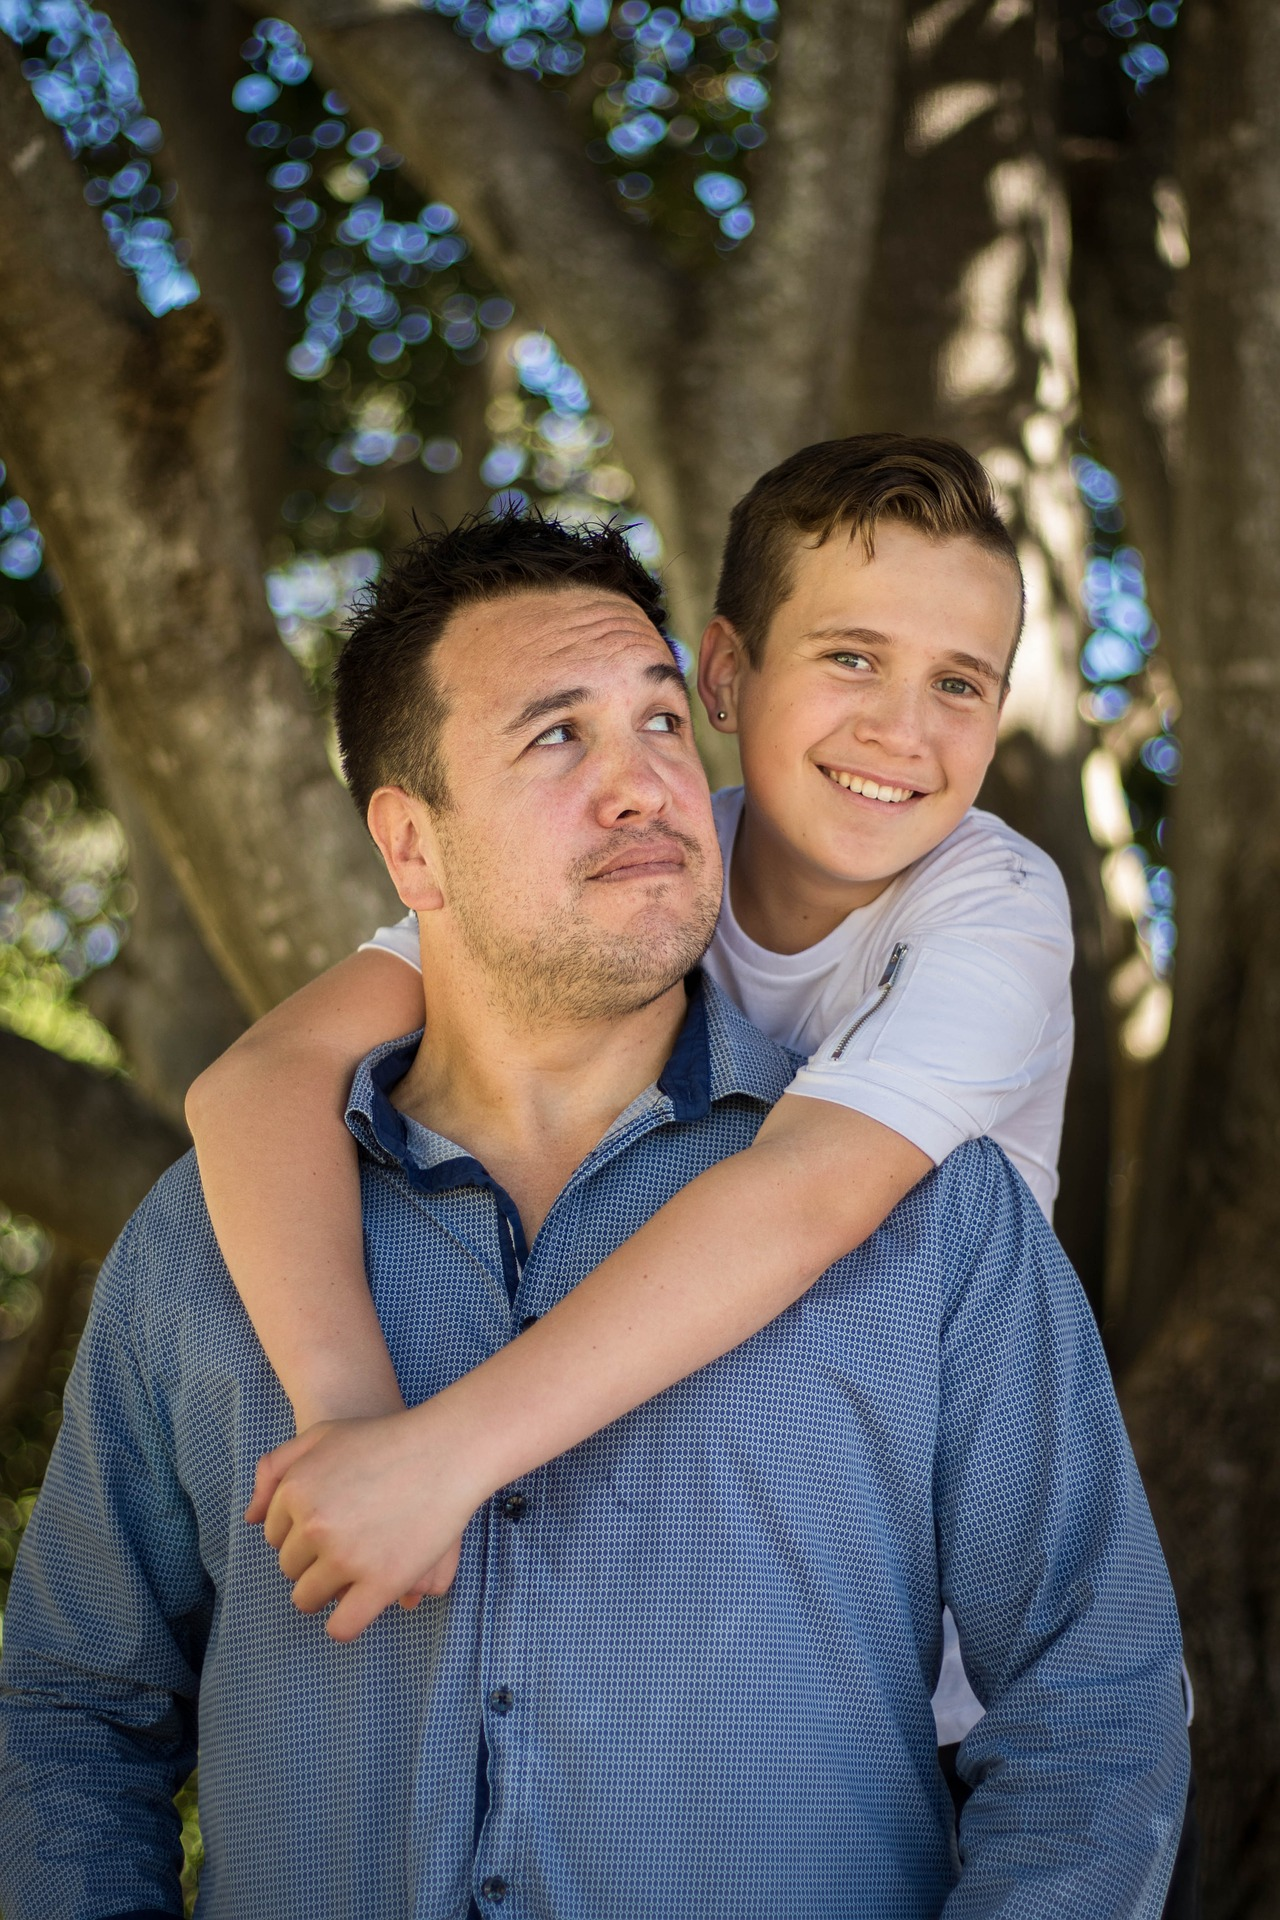 father-and-son-2695669_1920